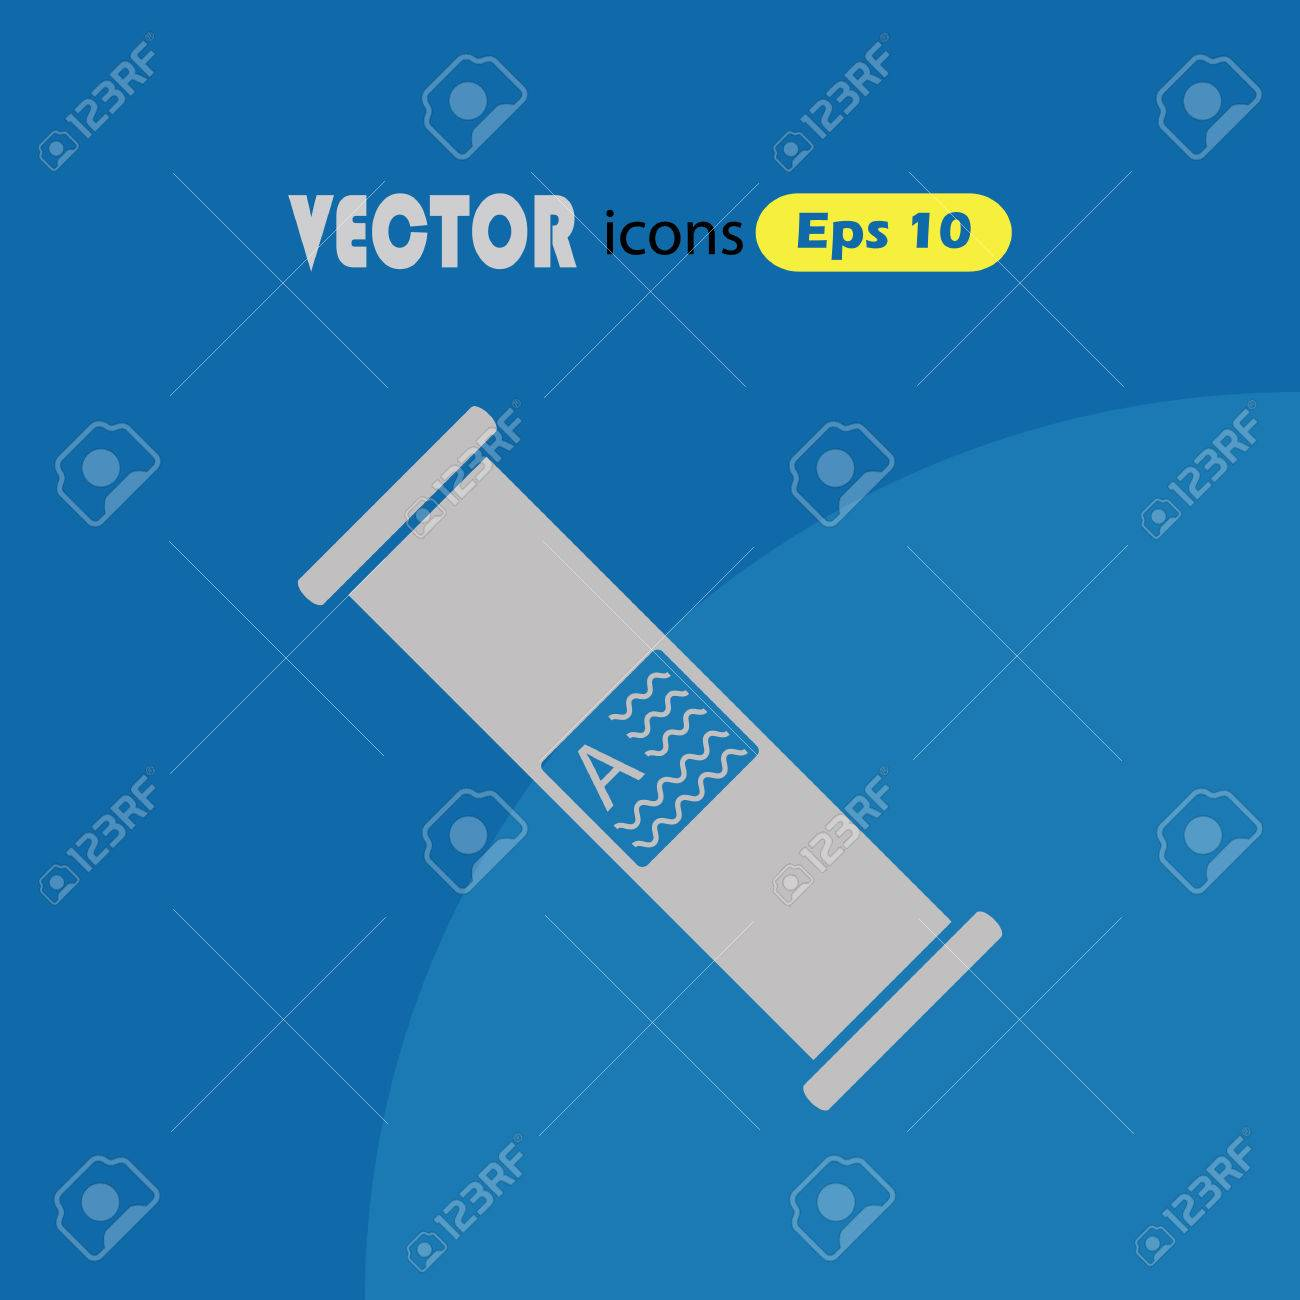 Electric Fuse Vector Icon Royalty Free Cliparts, Vectors, And Stock ...